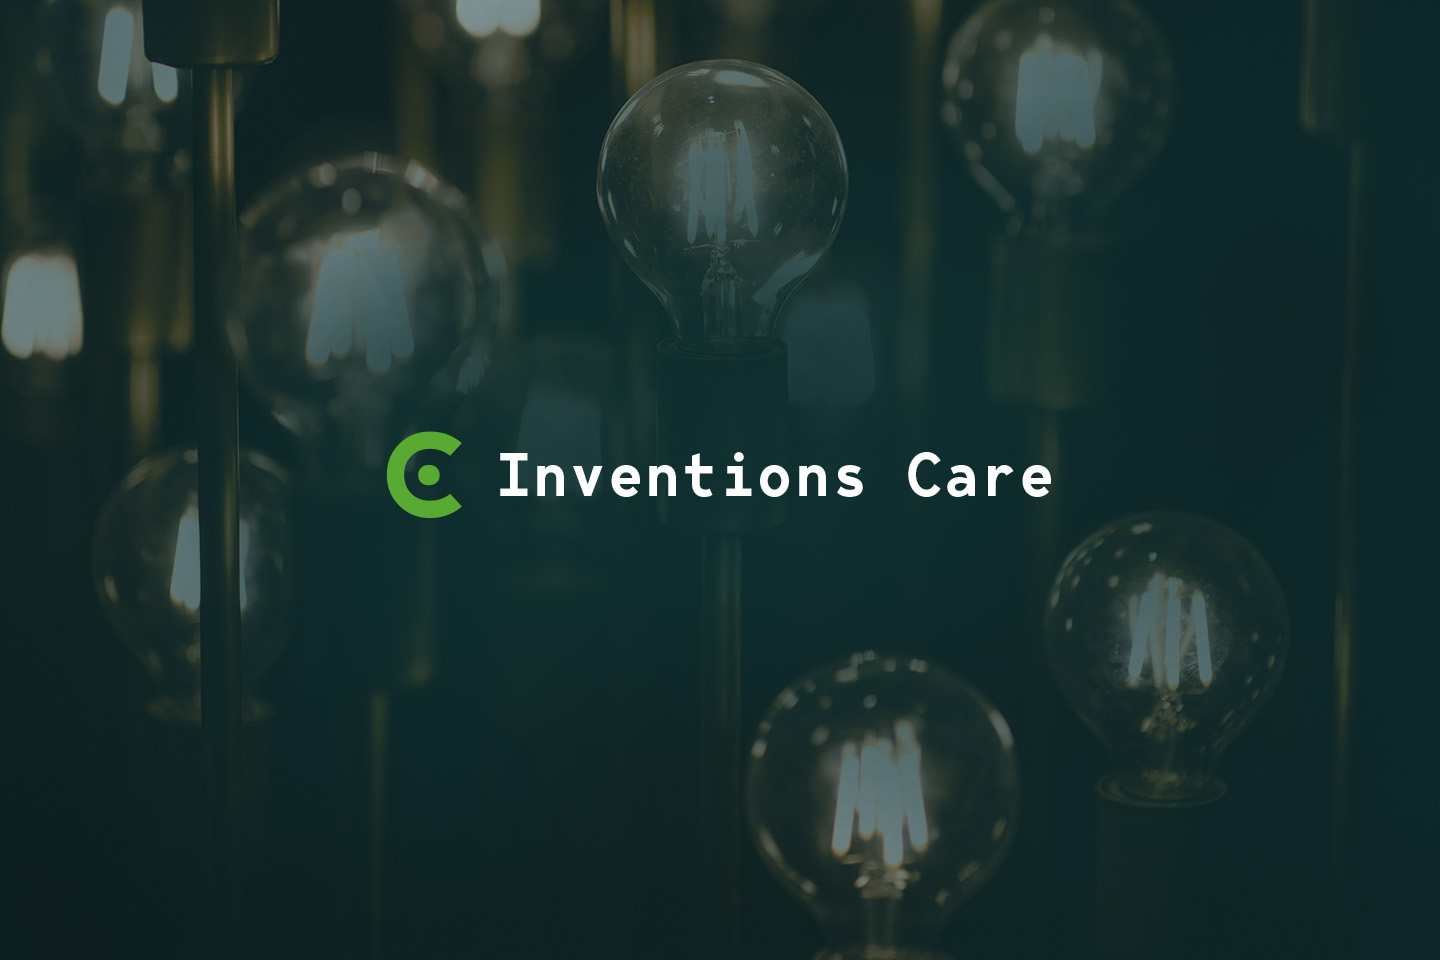 Inventions Care